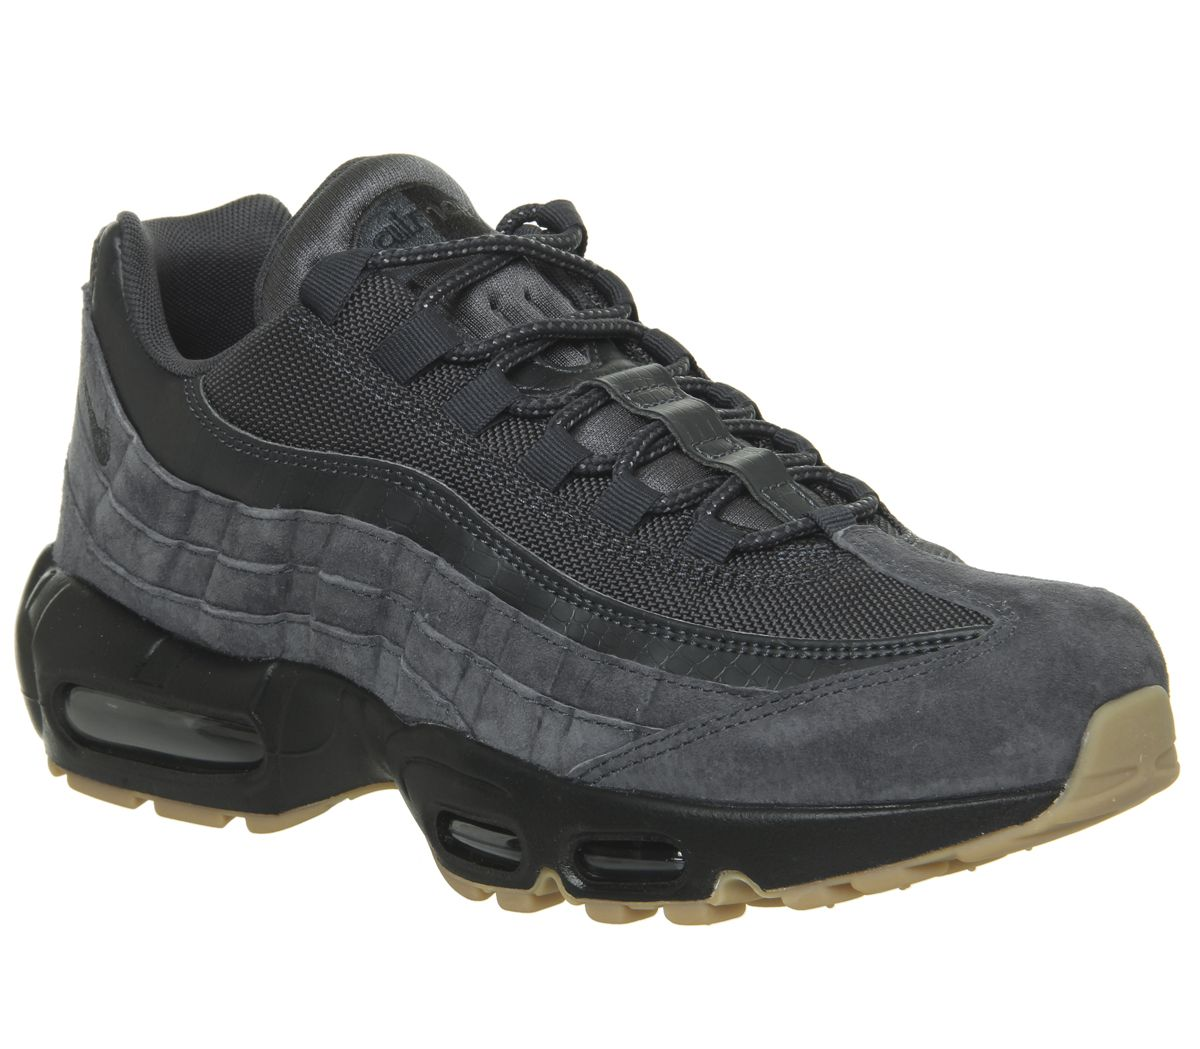 wholesale dealer 7ed81 d5434 Nike Air Max 95 Trainers Anthracite Black - His trainers